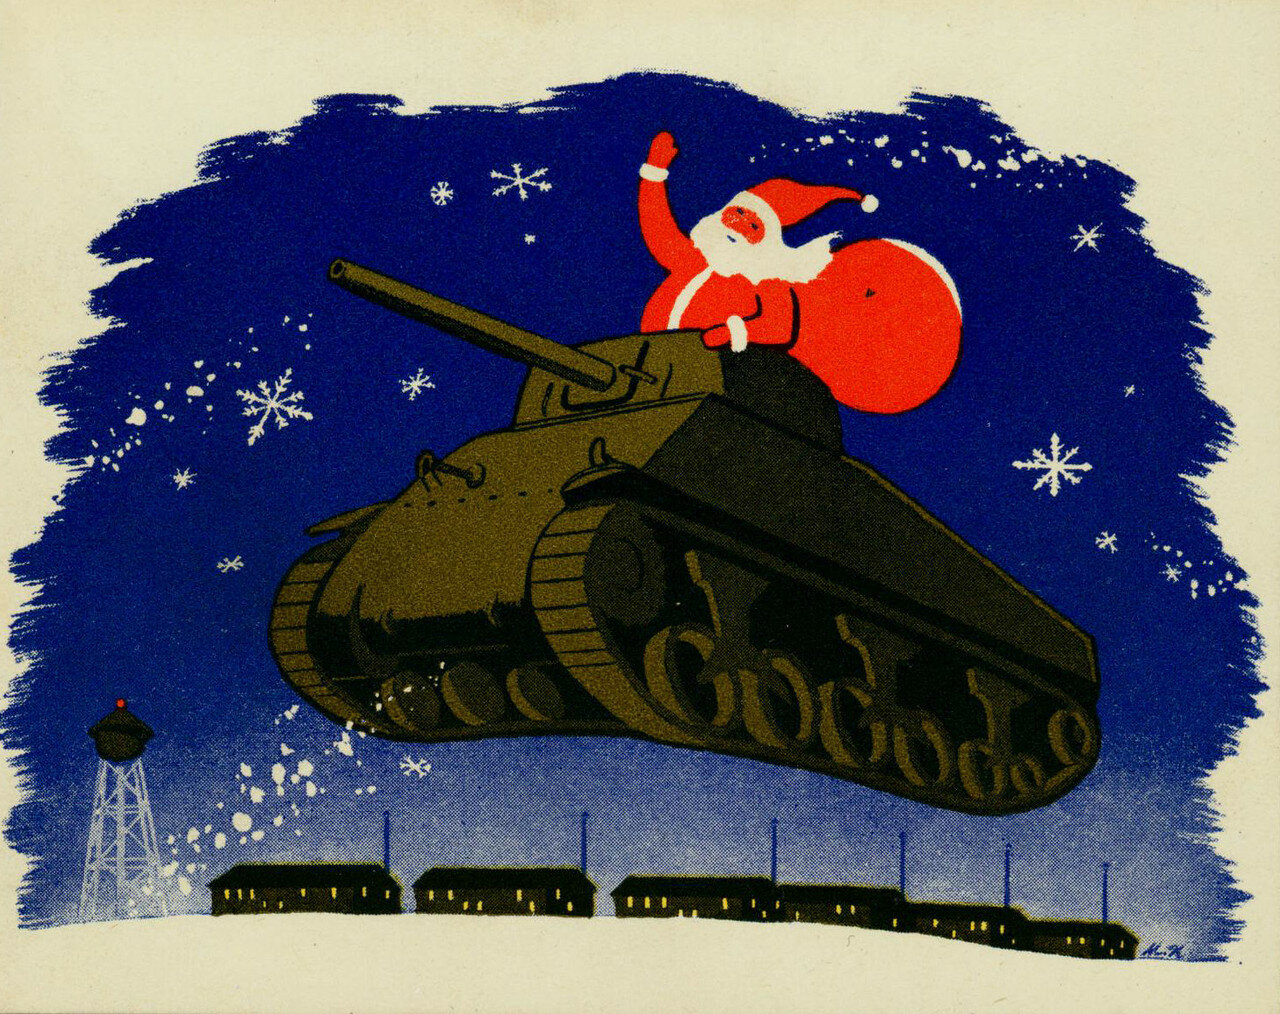 nyhs_xmascards_b-15-f-3_001-1.jpg